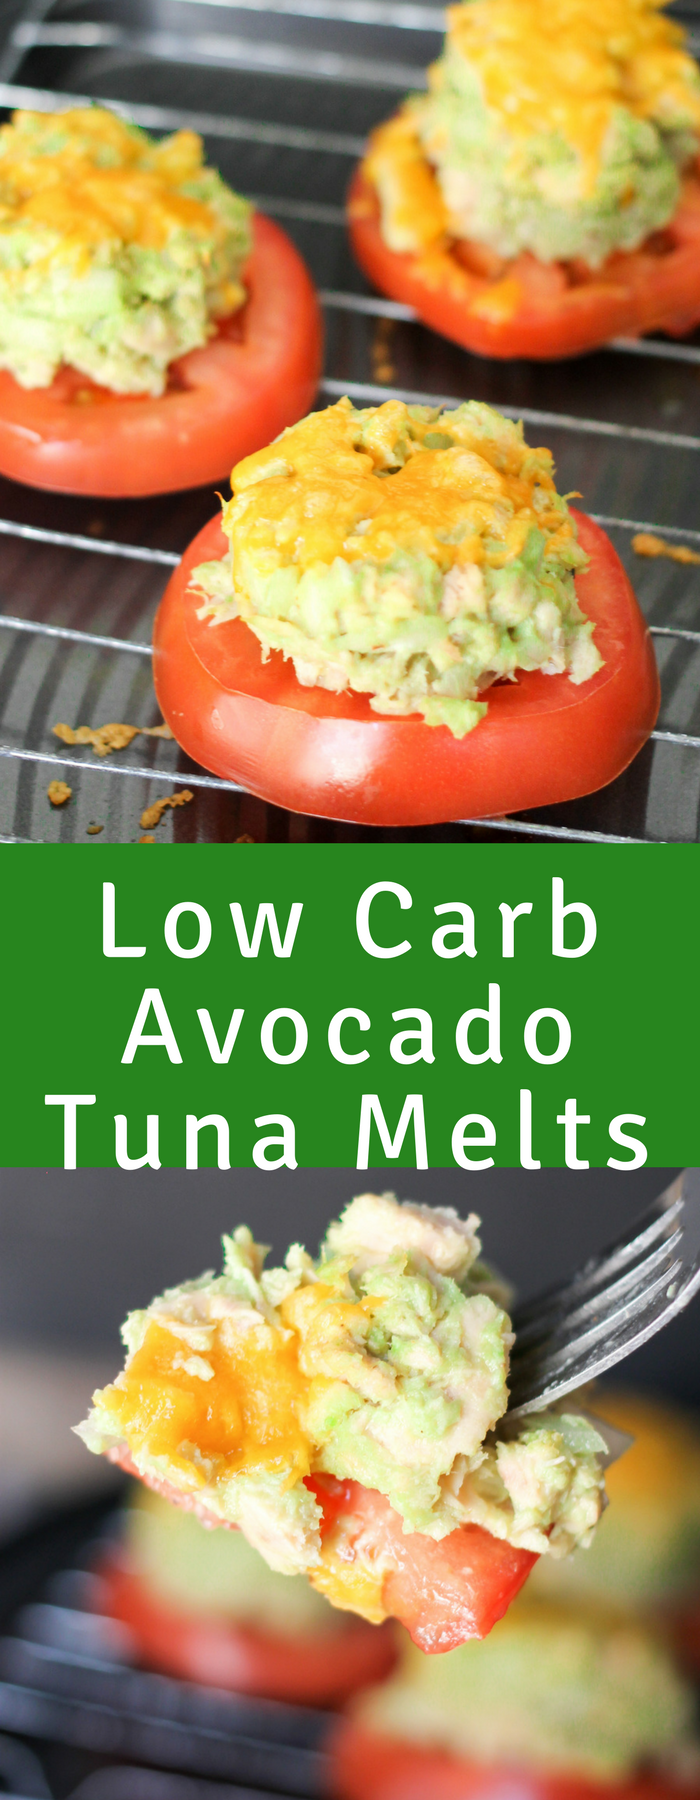 Low Carb Avocado Tuna Melts are the perfect healthy eating solution. Made with creamy avocado, and then piled over a juicy thick cut tomato and topped with cheese.